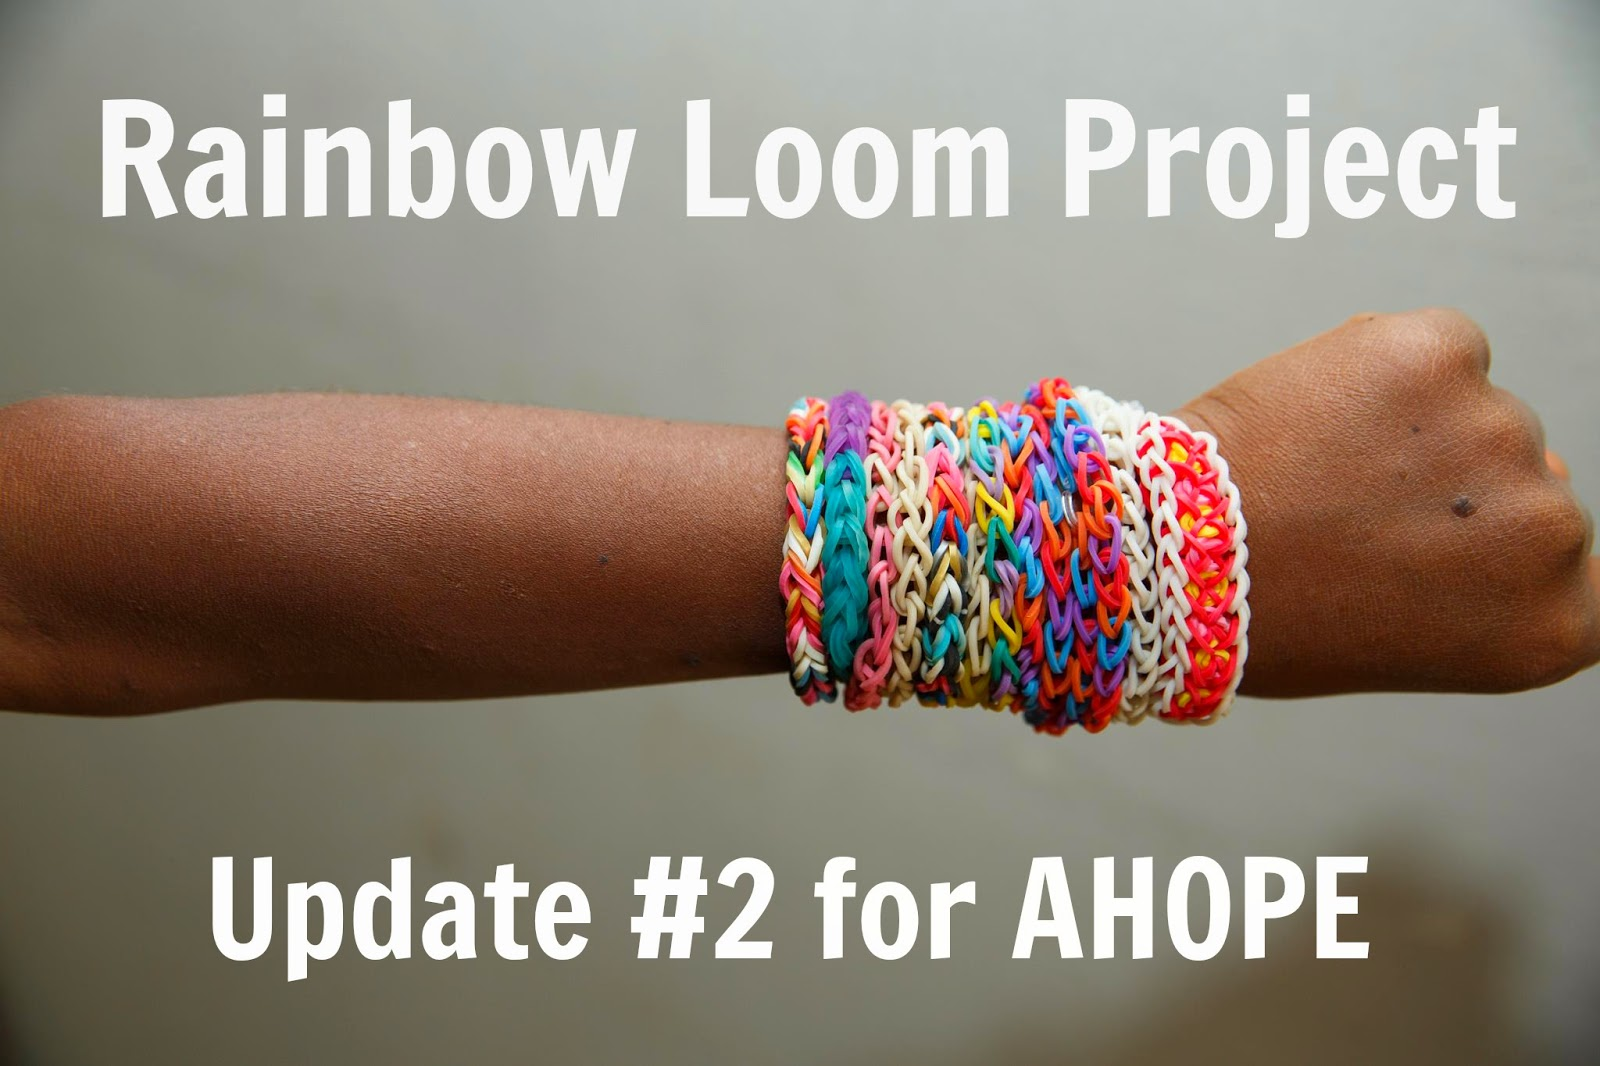 Rainbow Loom Project for AHOPE